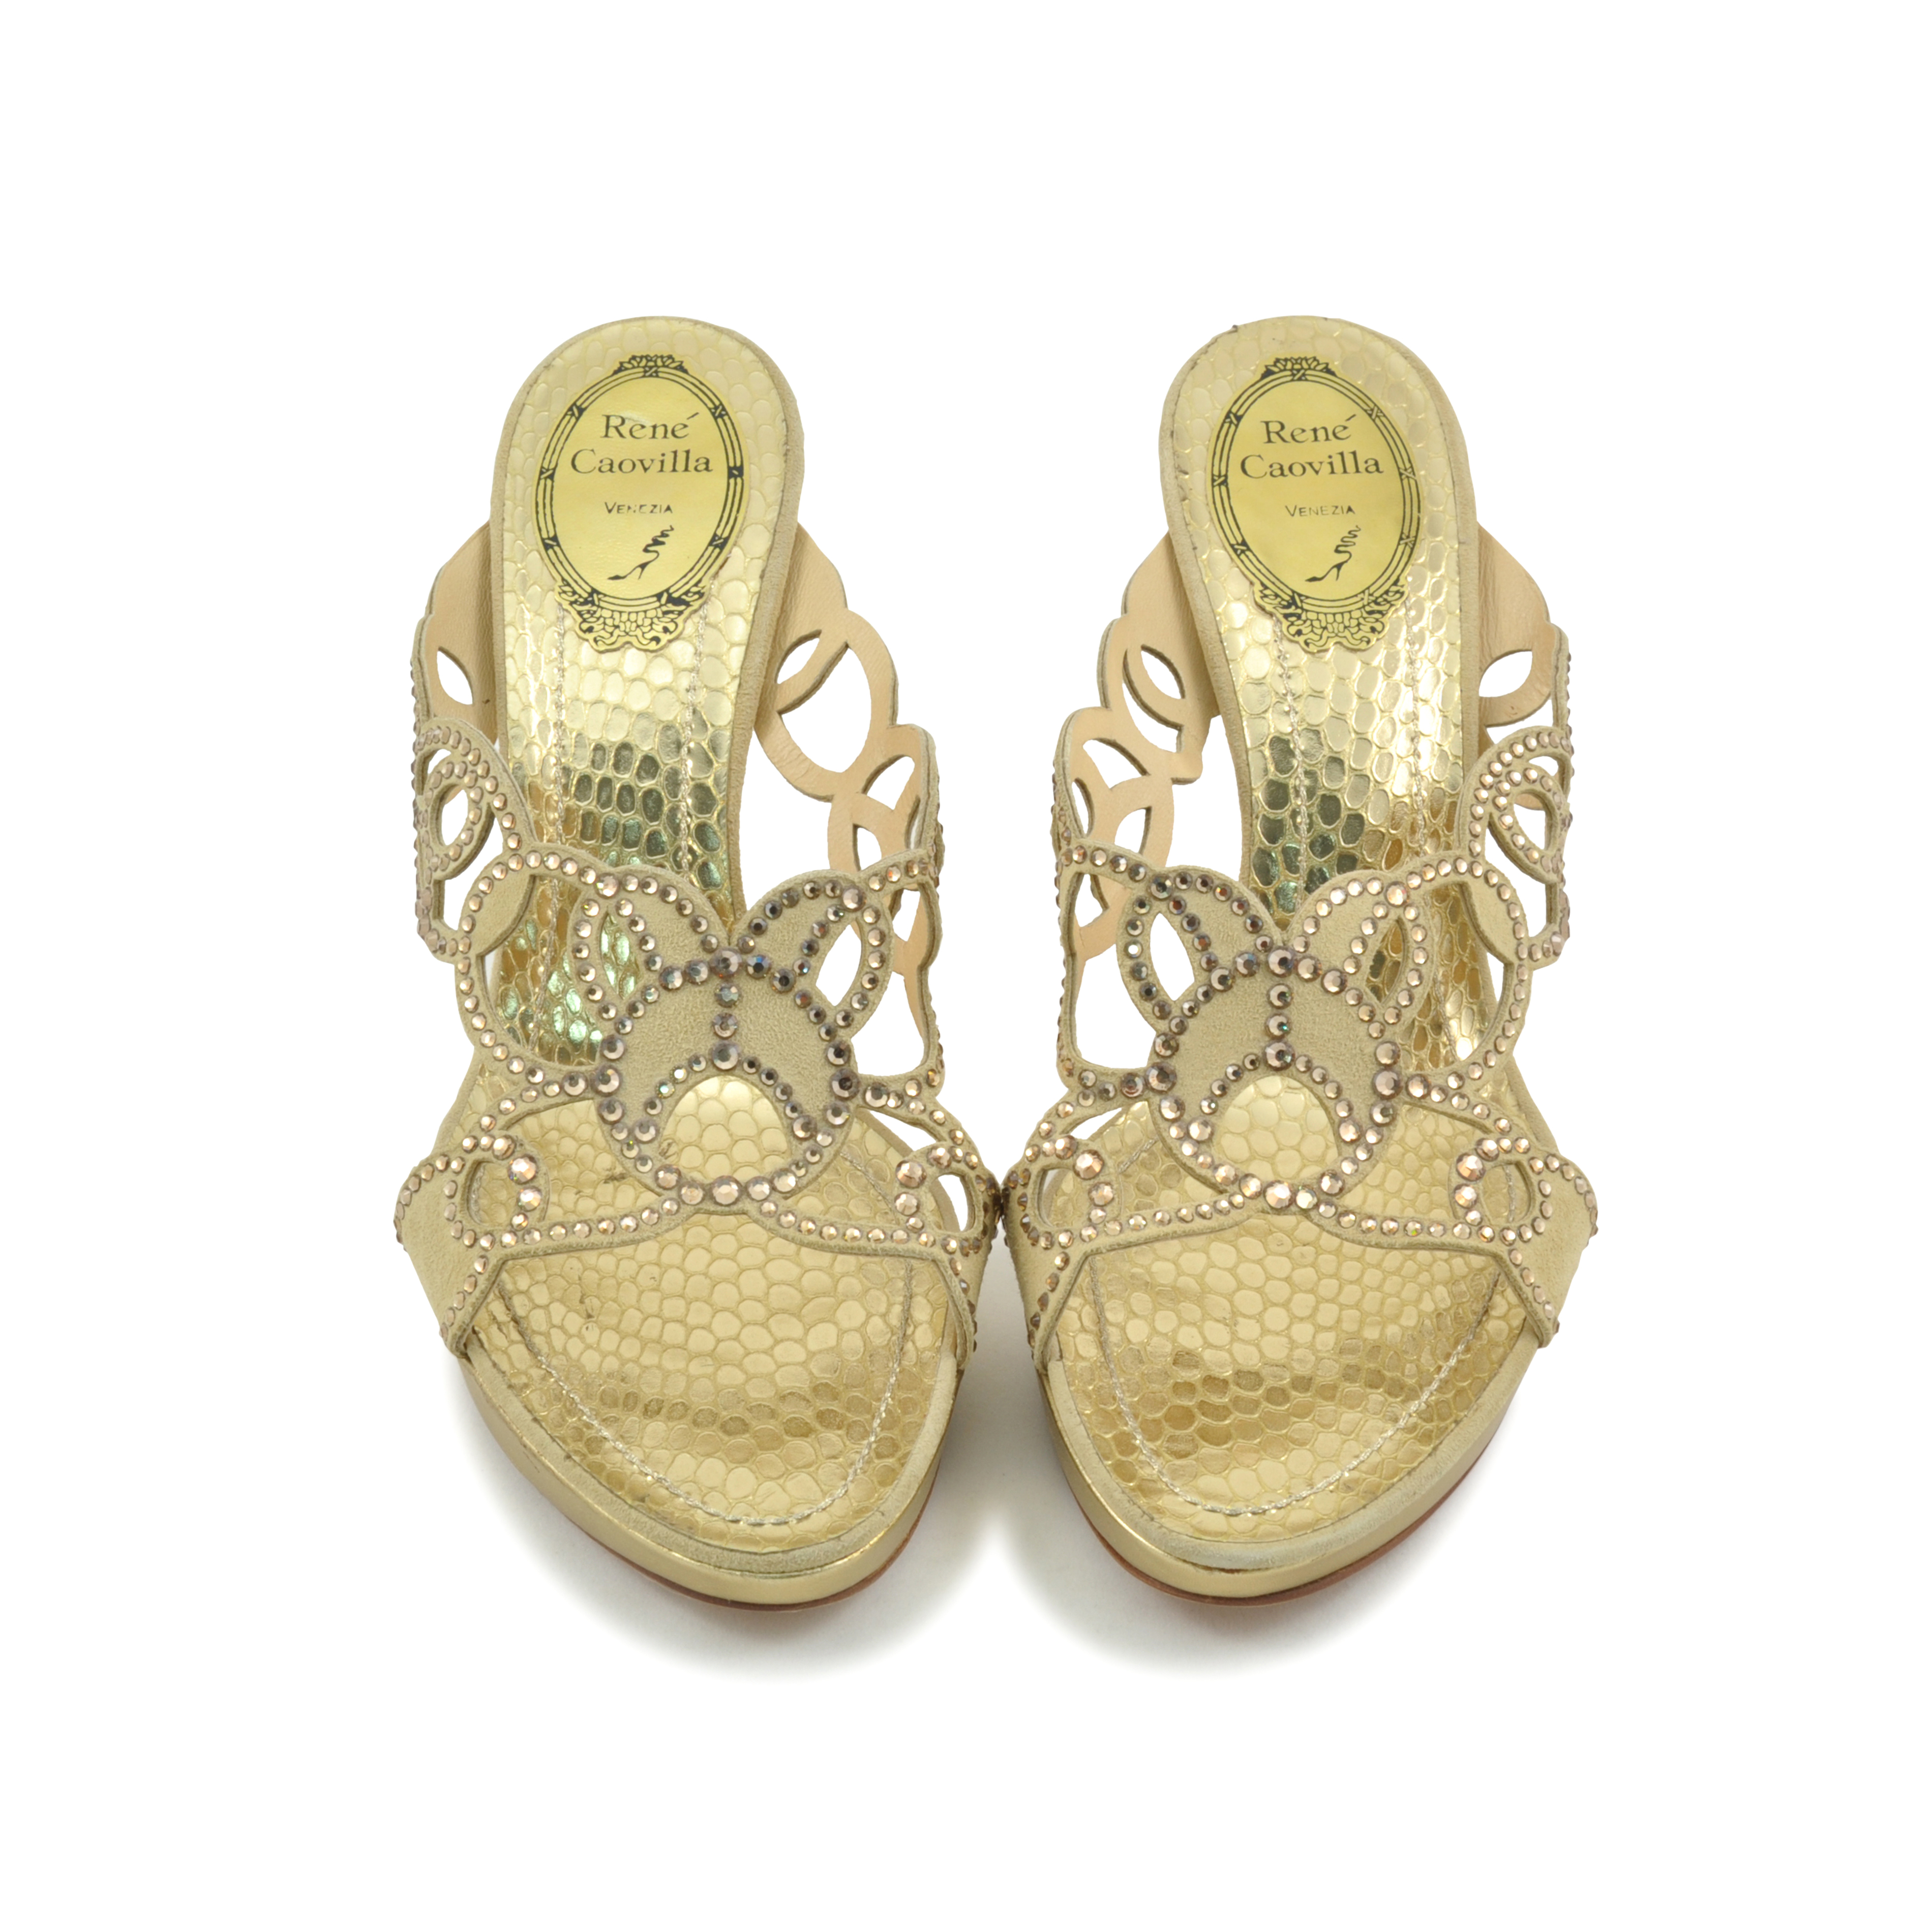 19273eeca0843d Authentic Second Hand René Caovilla Crystal Embellished Sandals  (PSS-097-00078)